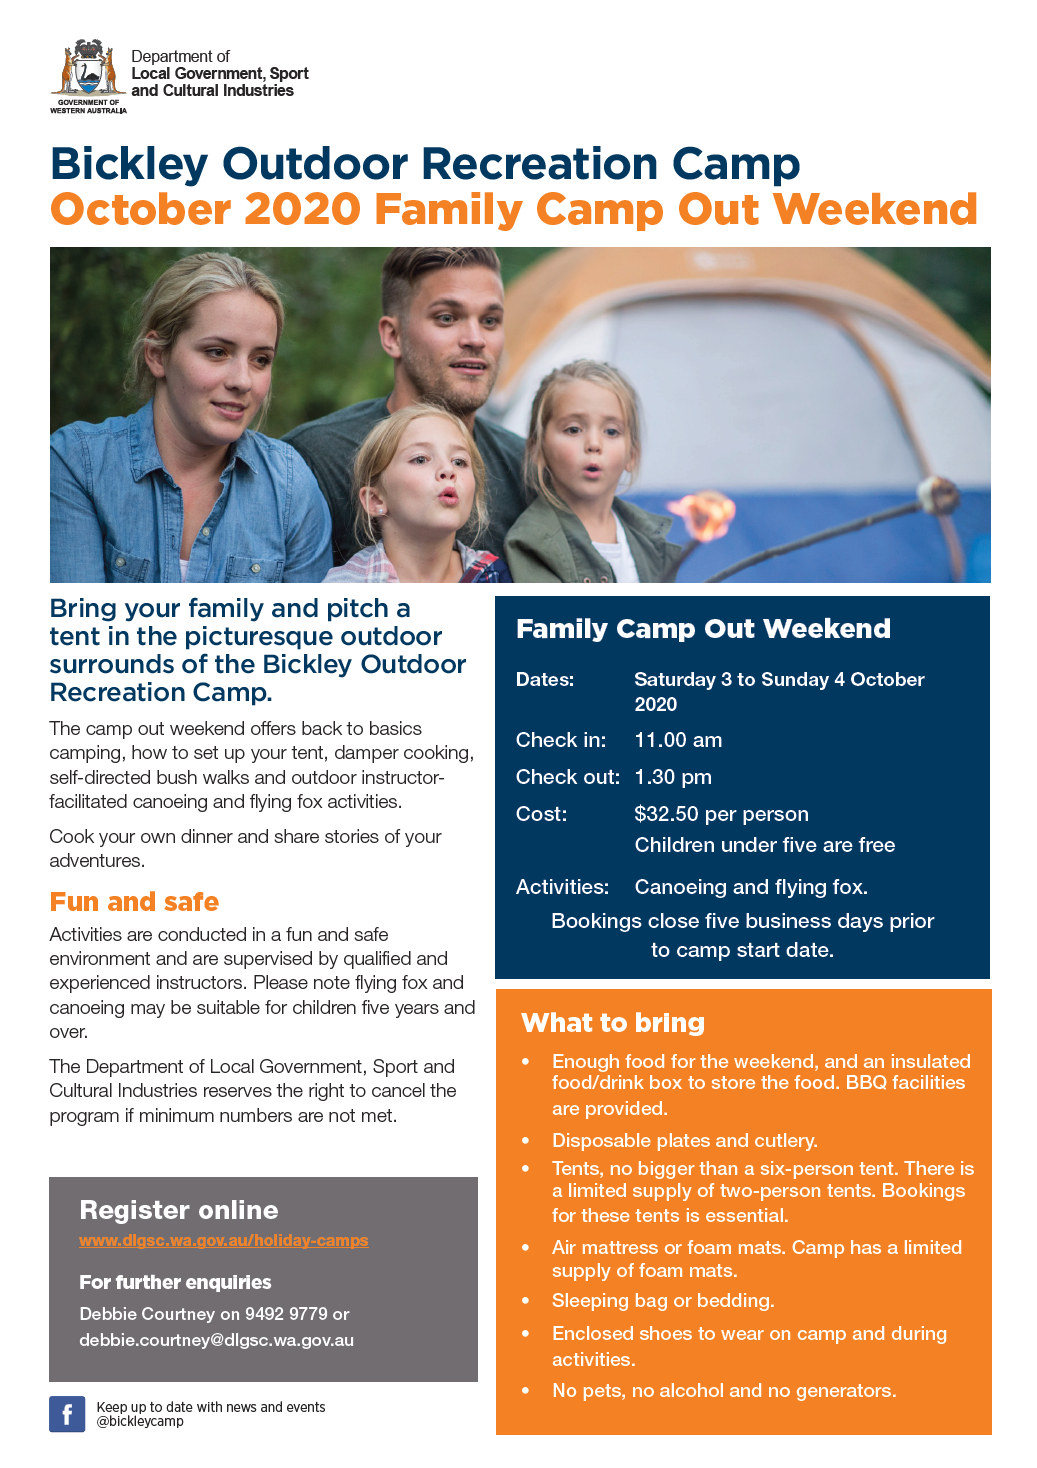 Bickley Family Camp Out October 2020 flyer